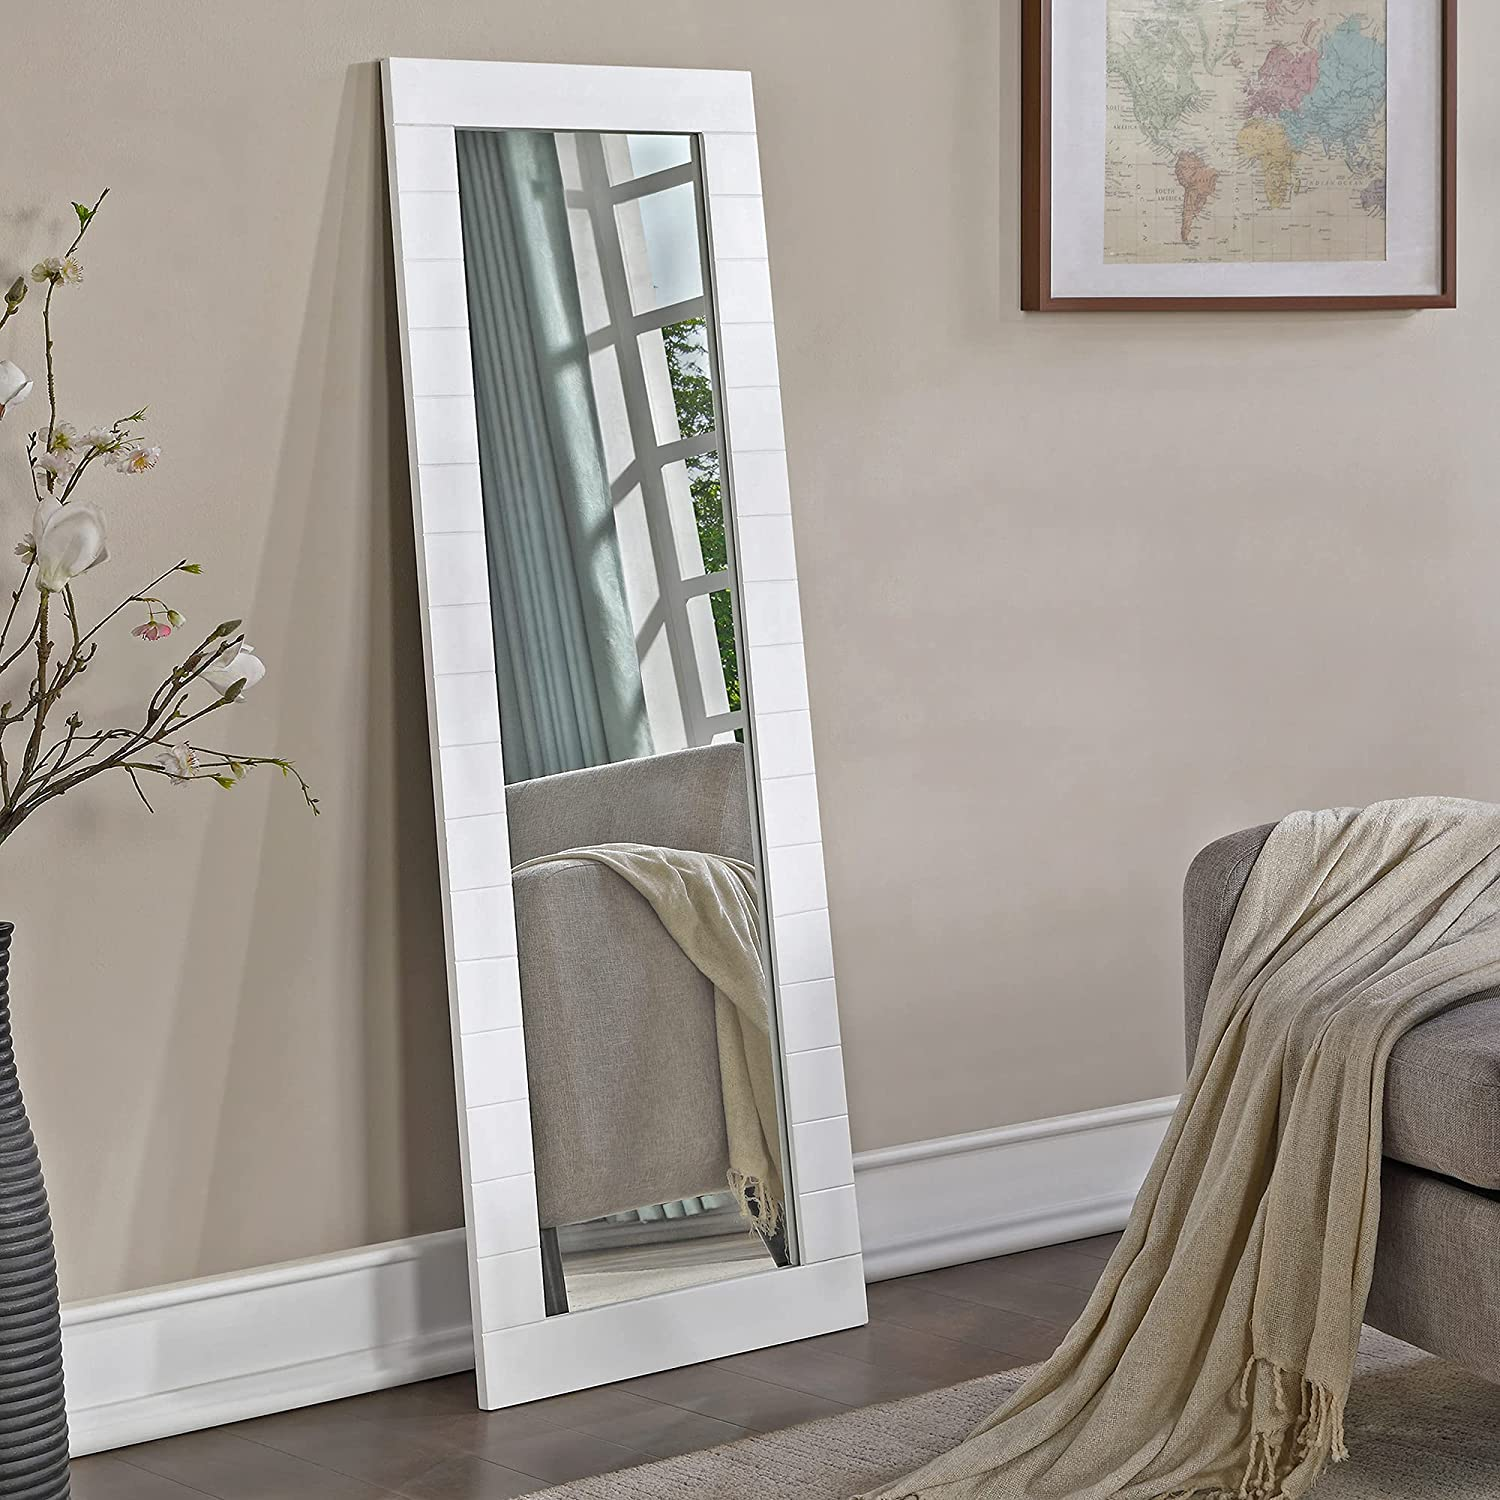 FirsTime Co. White Abigail Shiplap Length Standing Full Financial sales sale Popularity Mirror